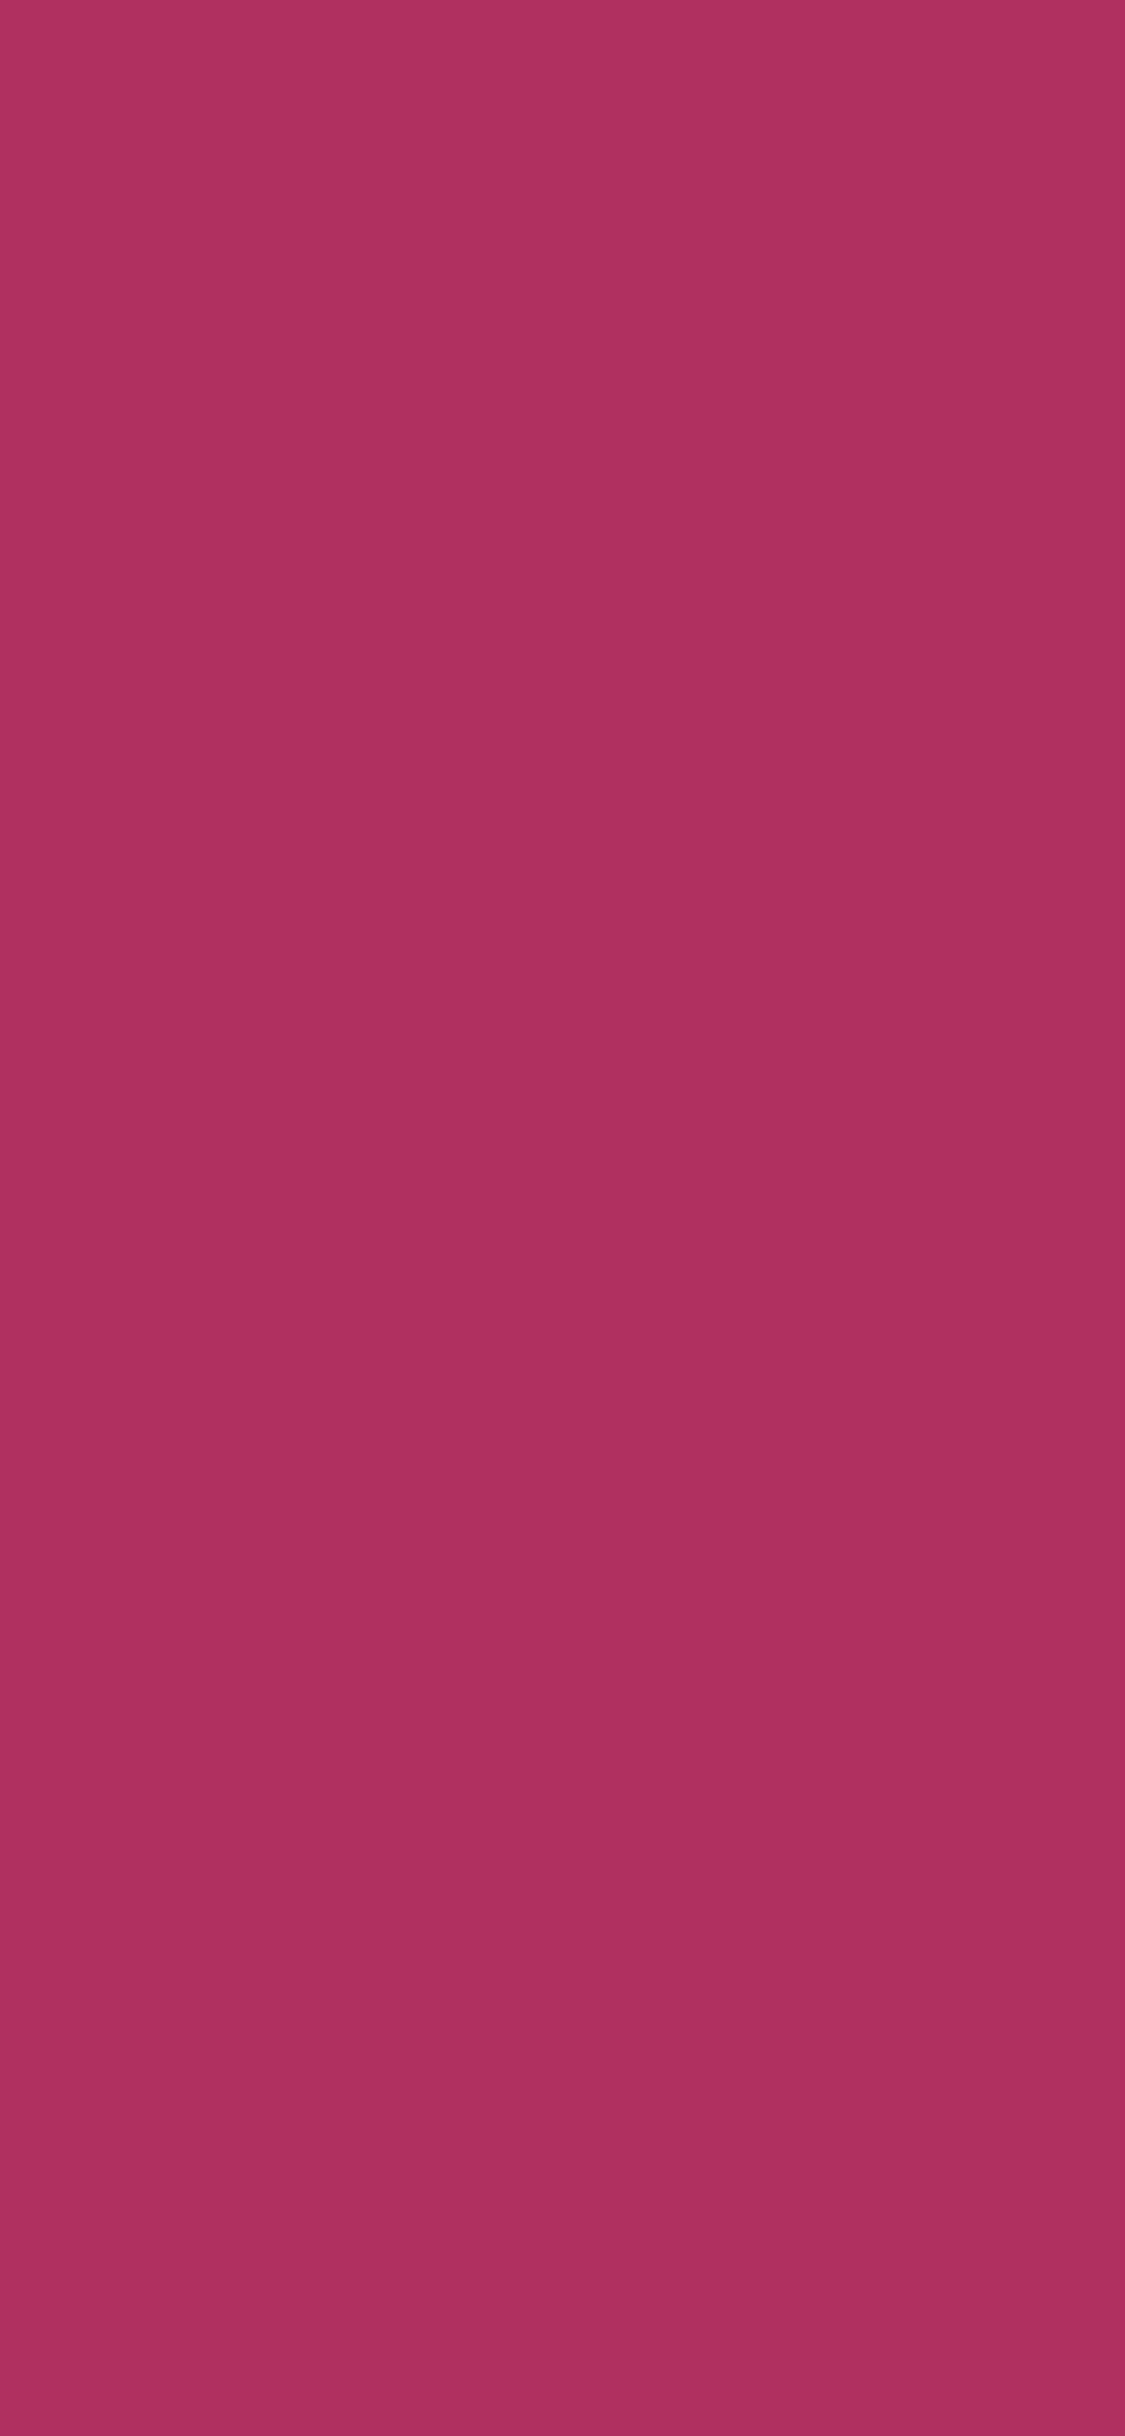 1125x2436 Maroon X11 Gui Solid Color Background